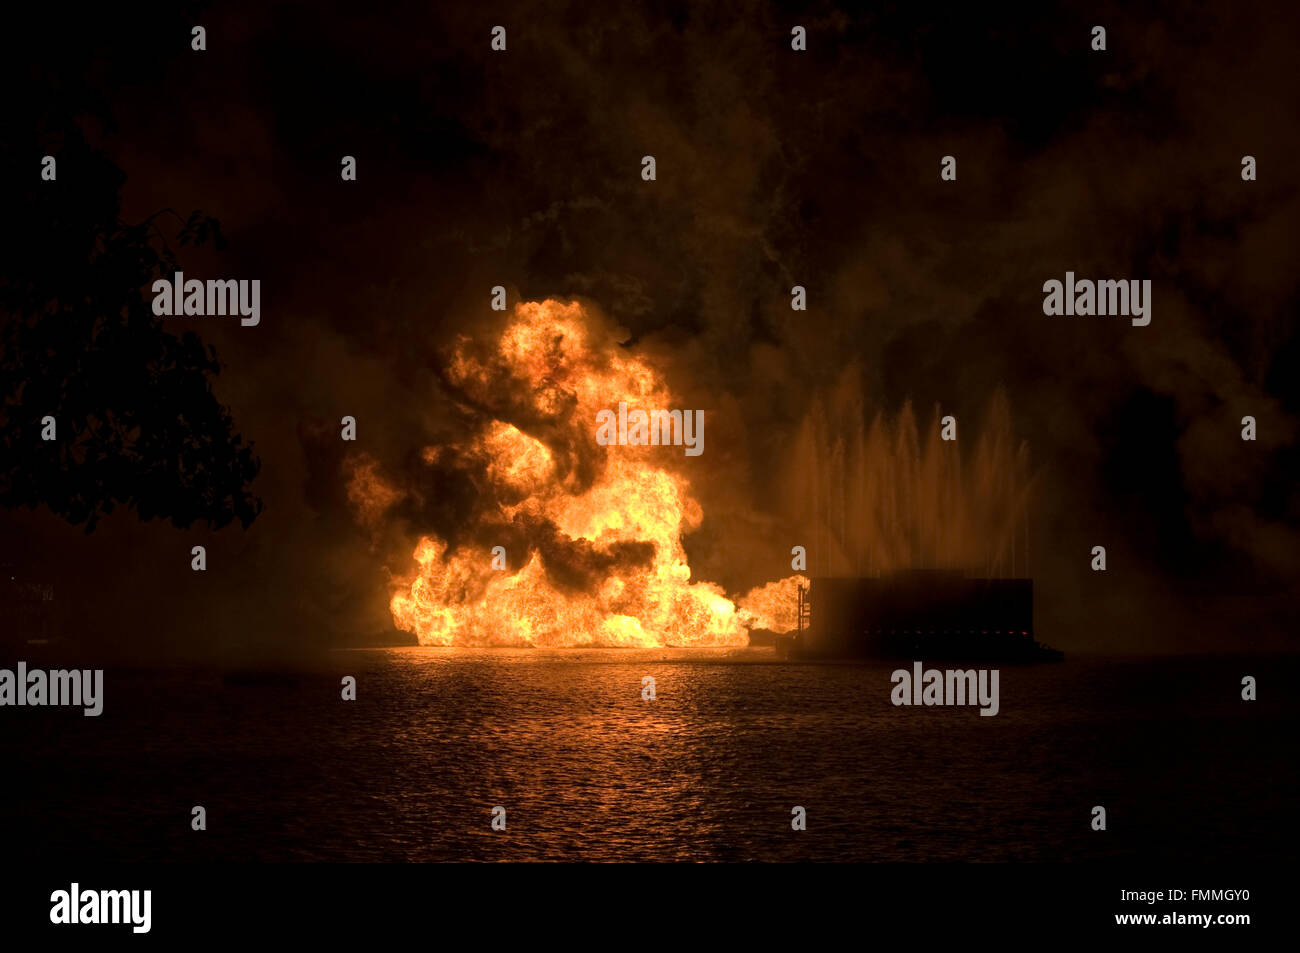 Gas fire explosion on water at night - Stock Image